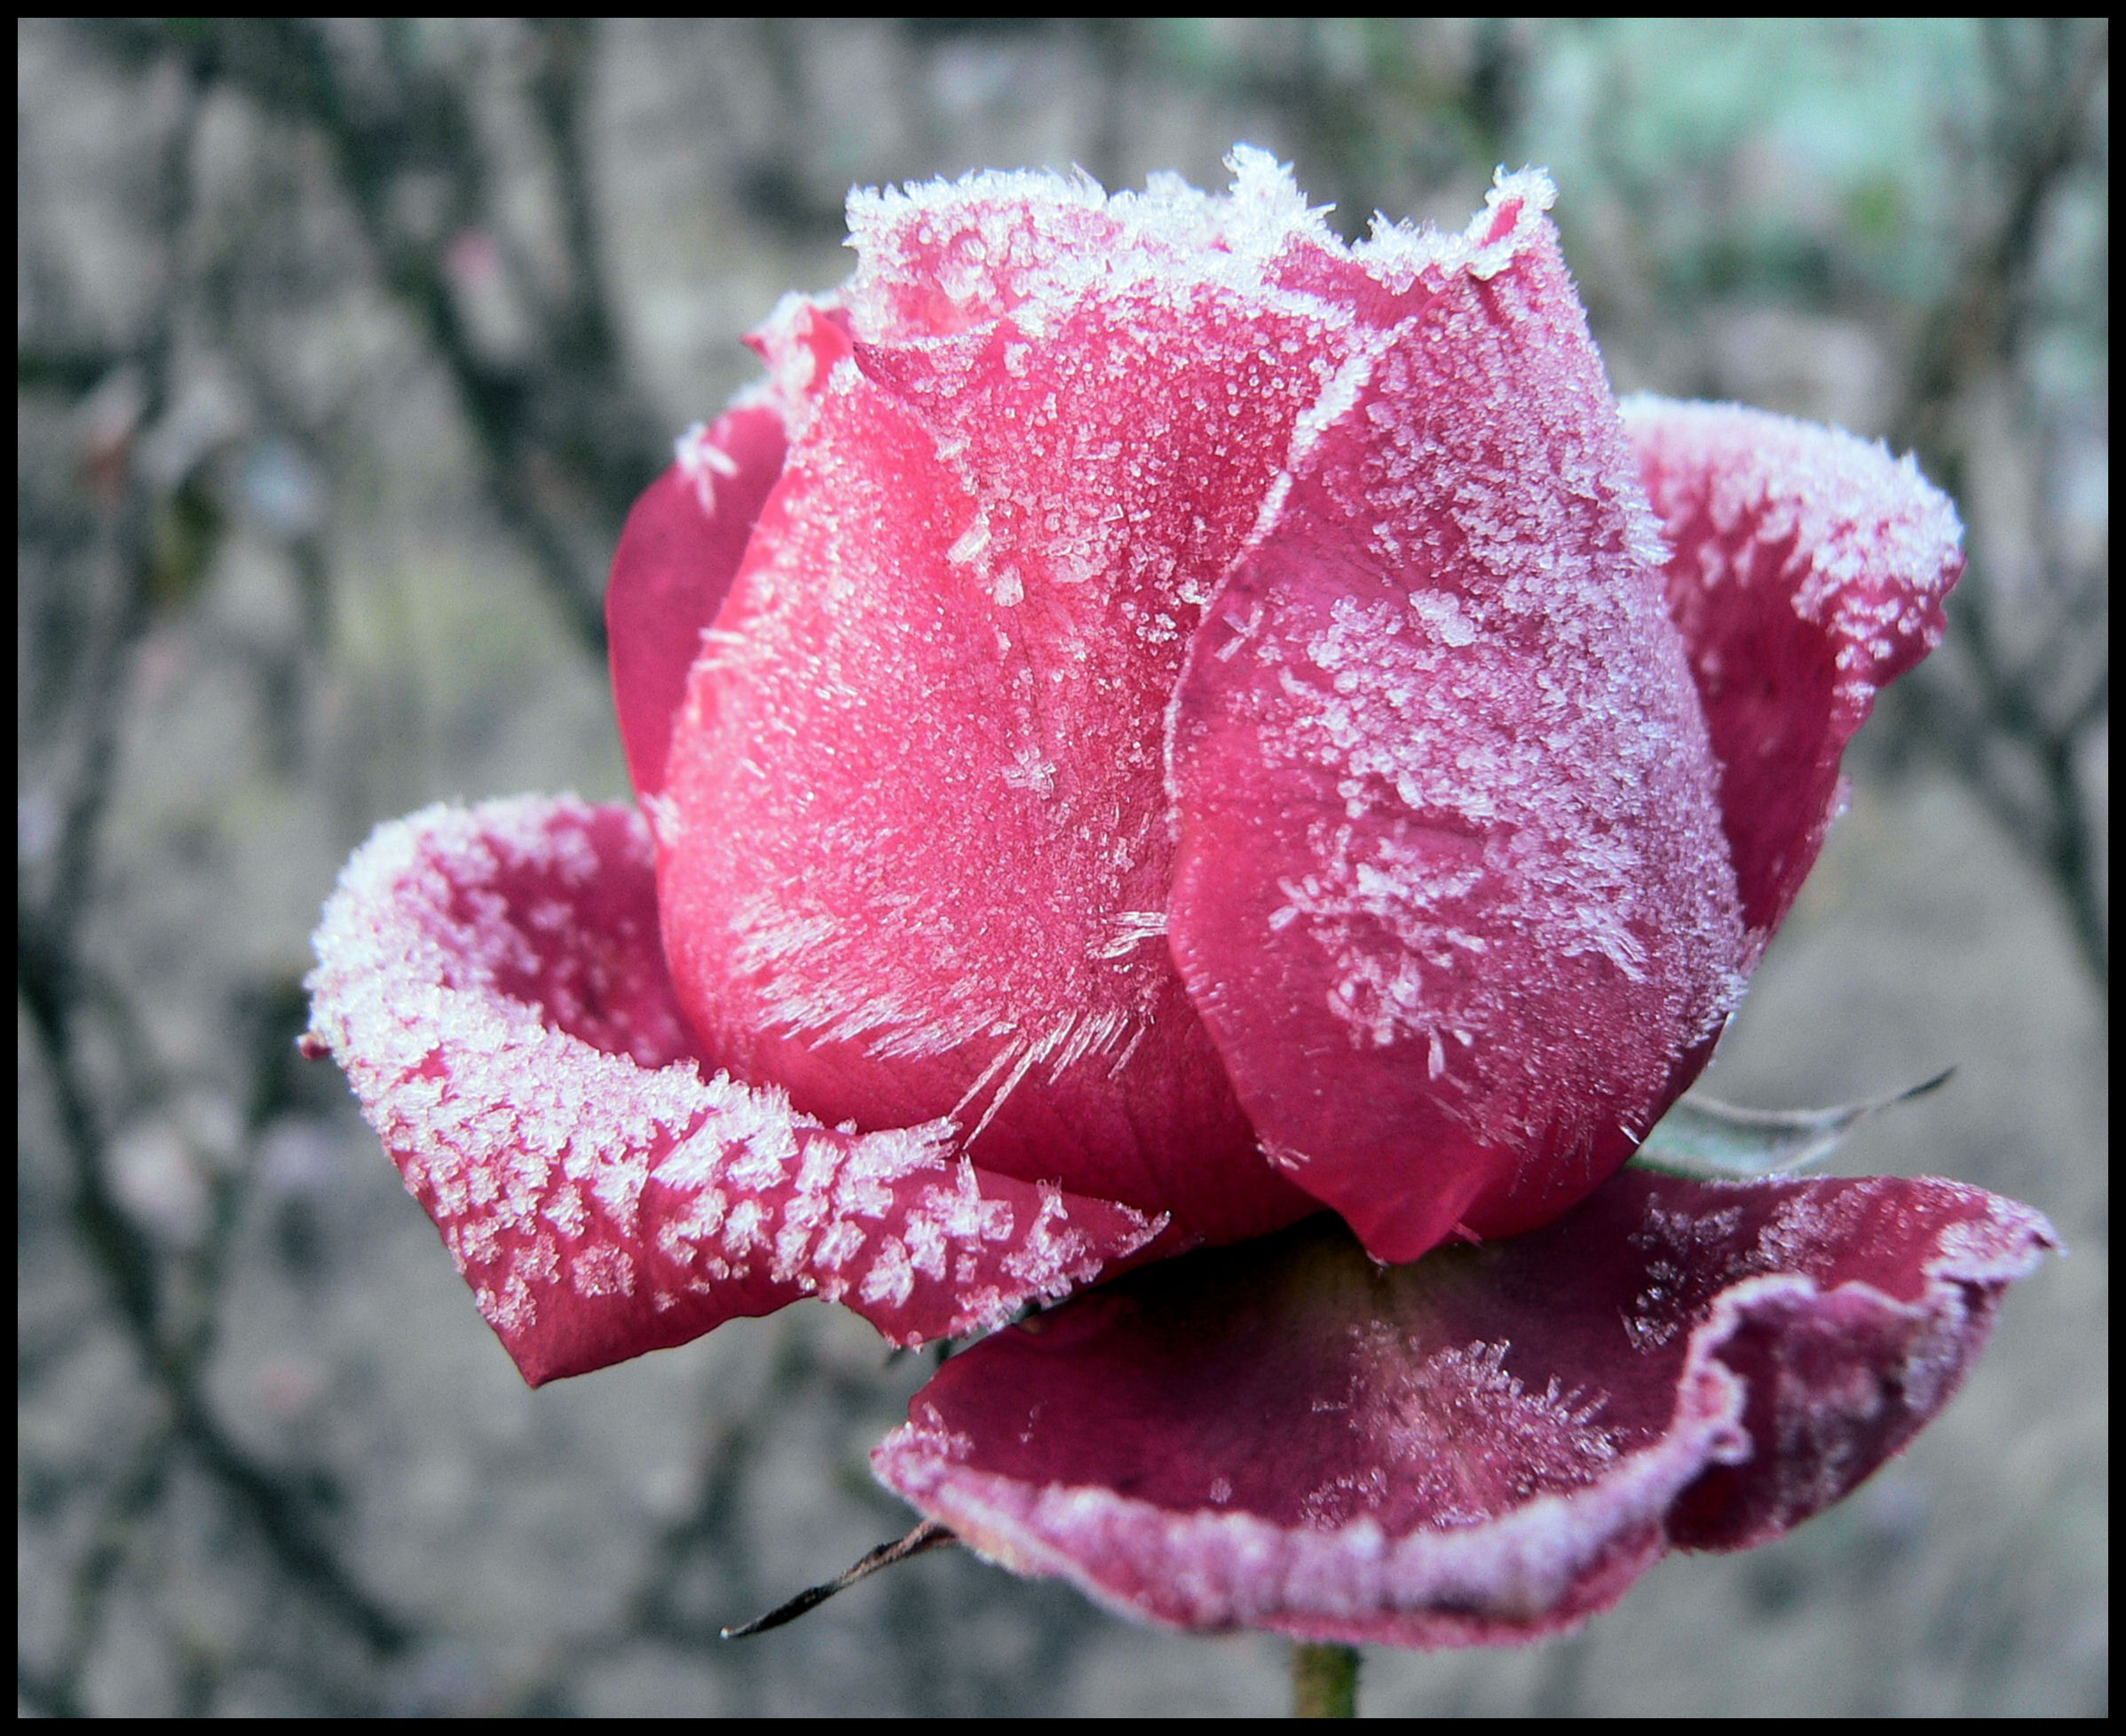 Frozen Rose Wallpaper HD Download For Desktop and Mobile